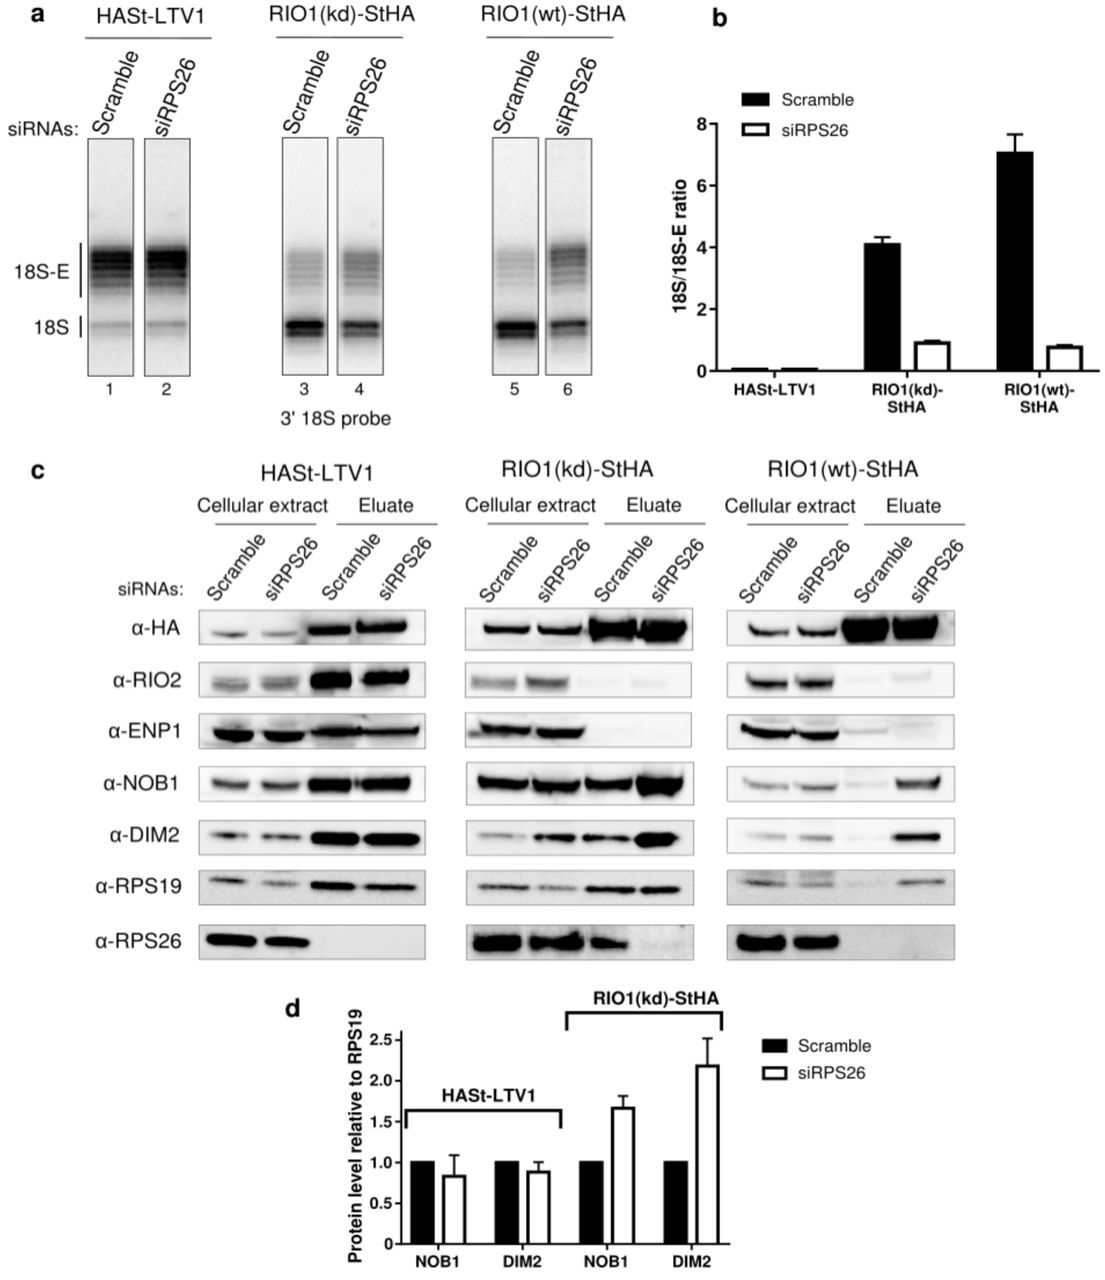 RPS26 is required for rRNA cleavage at site 3 as well as NOB1 and DIM2 release. HEK cell lines expressing tagged version of LTV1, the catalytically inactive RIO1-D324A (RIO1 (kd)) or wild-type RIO1 (RIO1(wt)) were treated with scramble or RPS26 siRNAs for 48 h. a , RNase H assays were conducted as in Figure 4 on rRNAs of pre-40S particles purified with the mentioned StHA tagged bait, either from RPS26-depleted cells or from control cells (scramble siRNA). b , Signals corresponding to the 18S-E and 18S rRNA detected in (a) were quantified and represented as the 18S/18S-E ratio for the different pre-40S particles. Error bars, s.d. (n=3) c , Cell extracts and purified particles were analysed by Western Blot using the indicated antibodies. d , Bands corresponding to DIM2 and NOB1 (in the eluates) were quantified, corrected for pre-40S particle loading (using RPS19) and normalized to the control condition (set to 1). Error bars, s.d. (n=3).